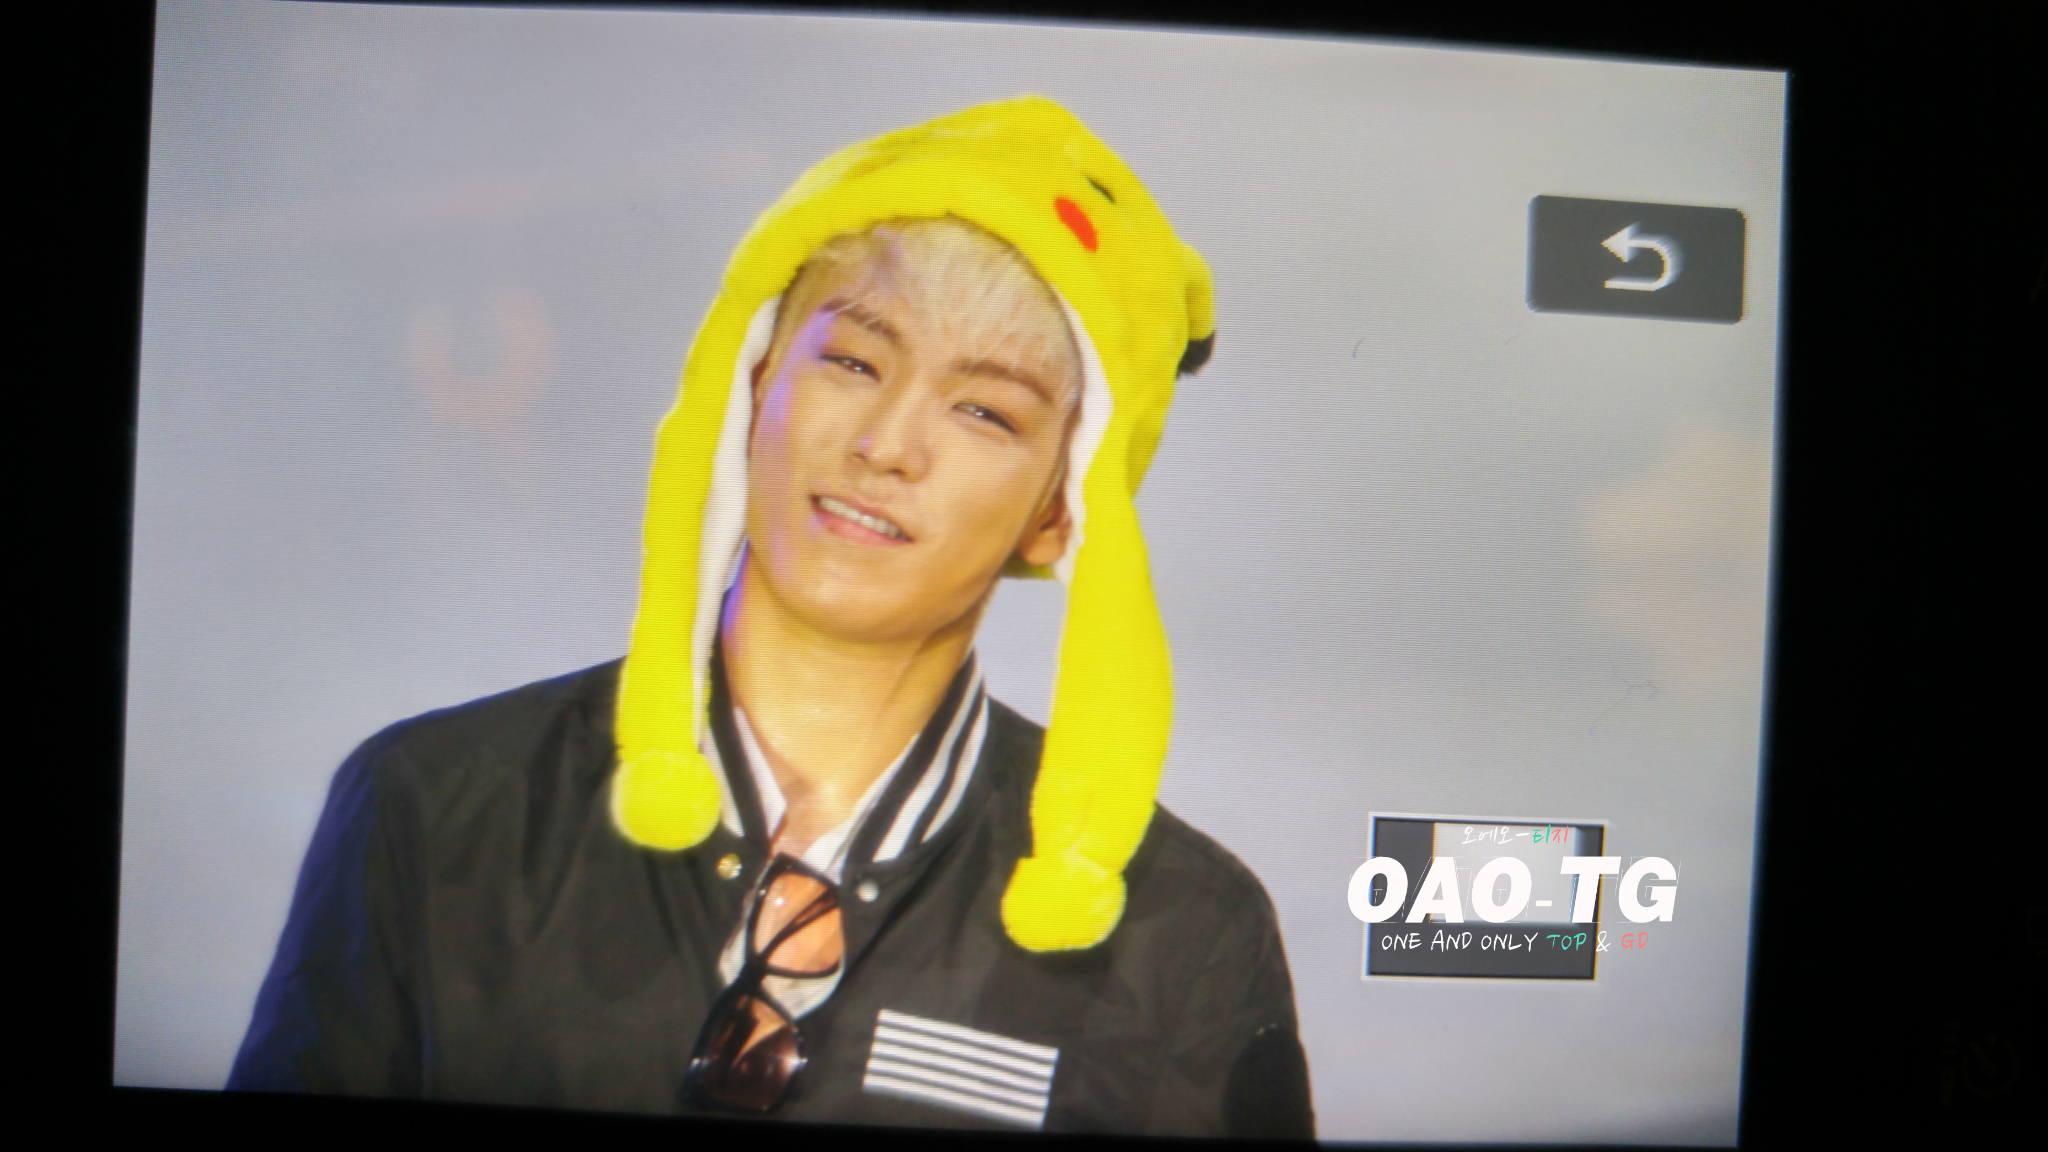 BIGBANG - Made Tour 2015 - Shenzhen - 07aug2015 - OAO-TG - 06.jpg